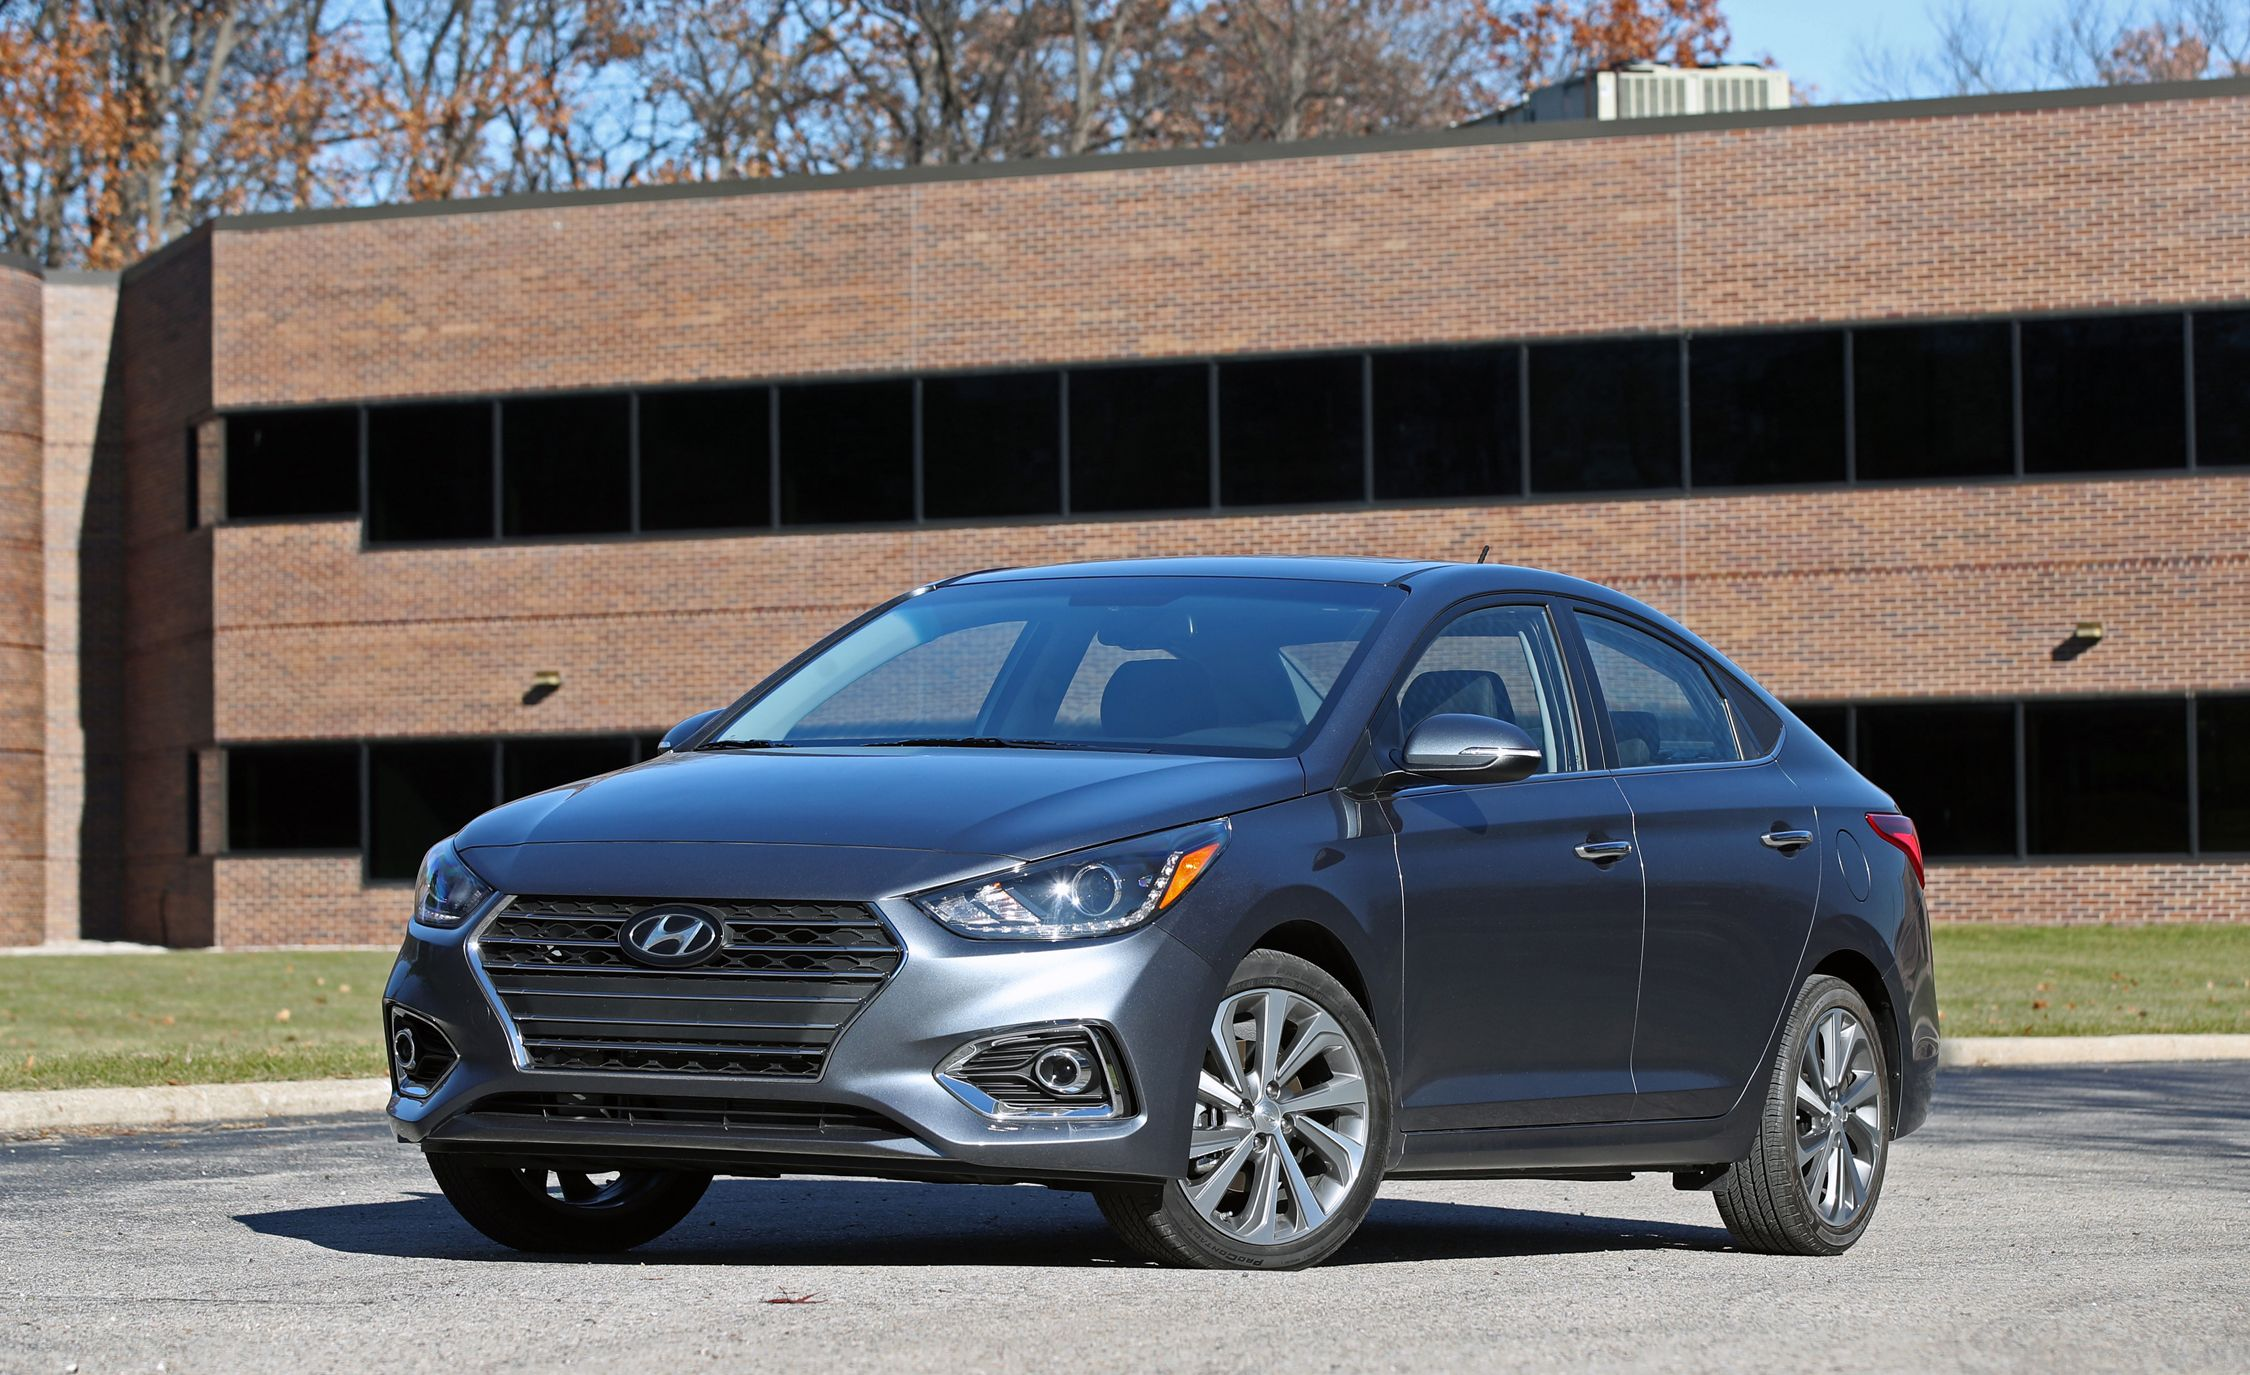 2018 Hyundai Accent Exterior Review Car And Driver